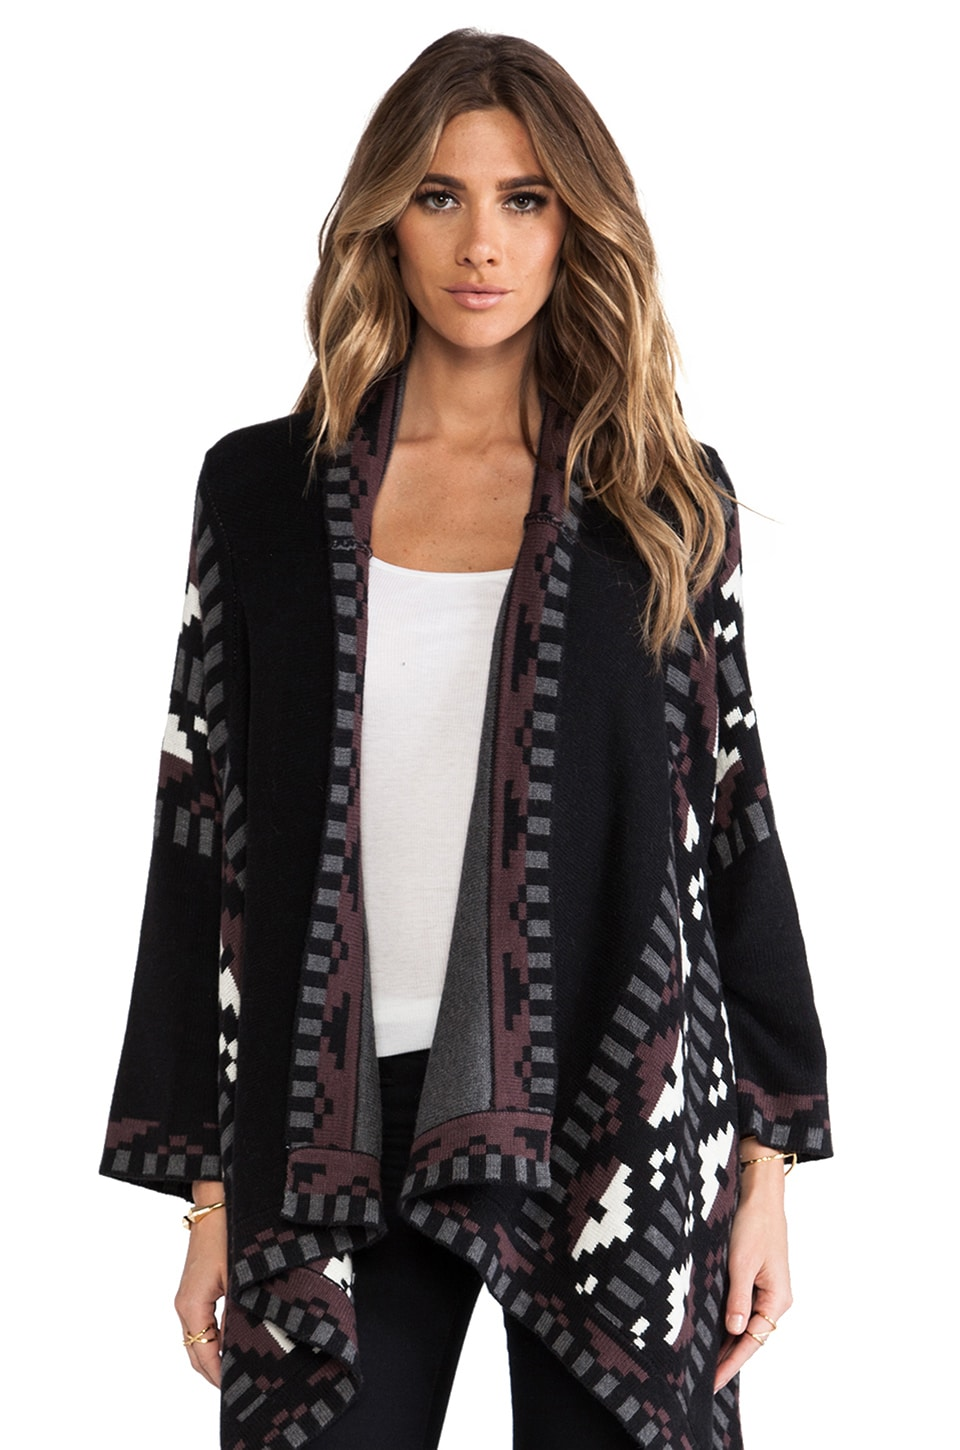 Twelfth Street By Cynthia Vincent Anniversary Blanket Sweater in Black Combo